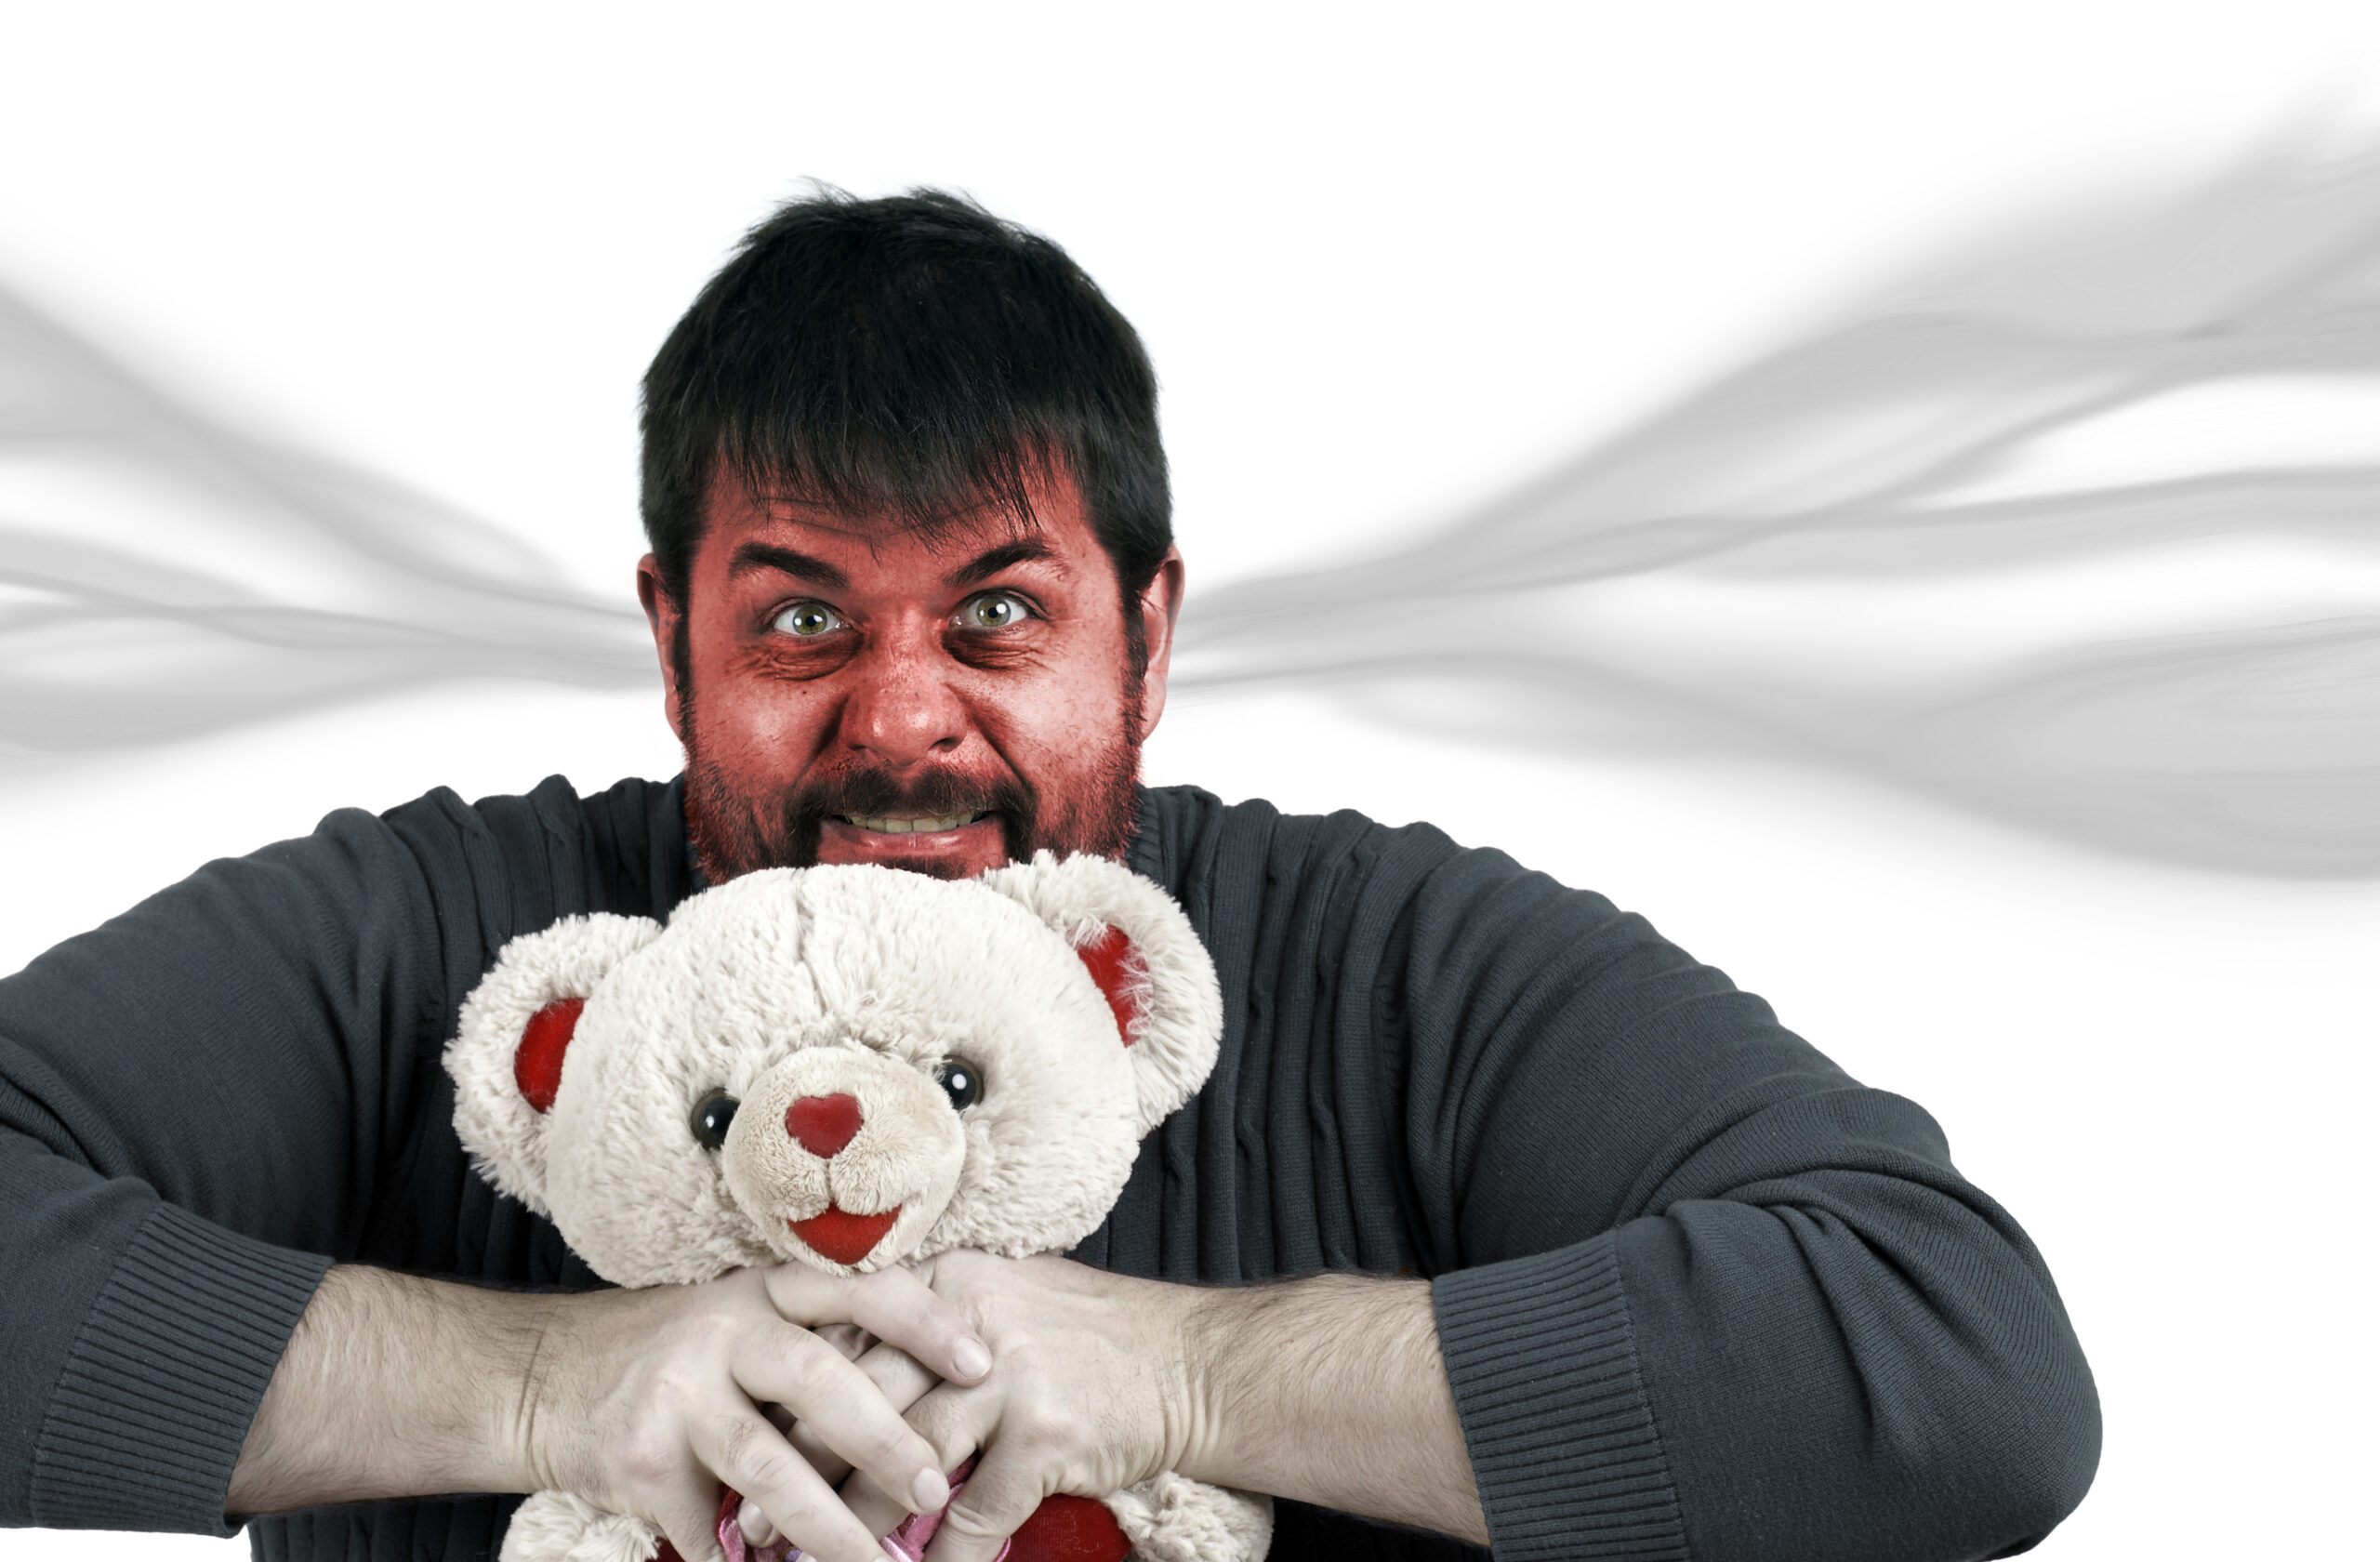 angry man with a teddy bear